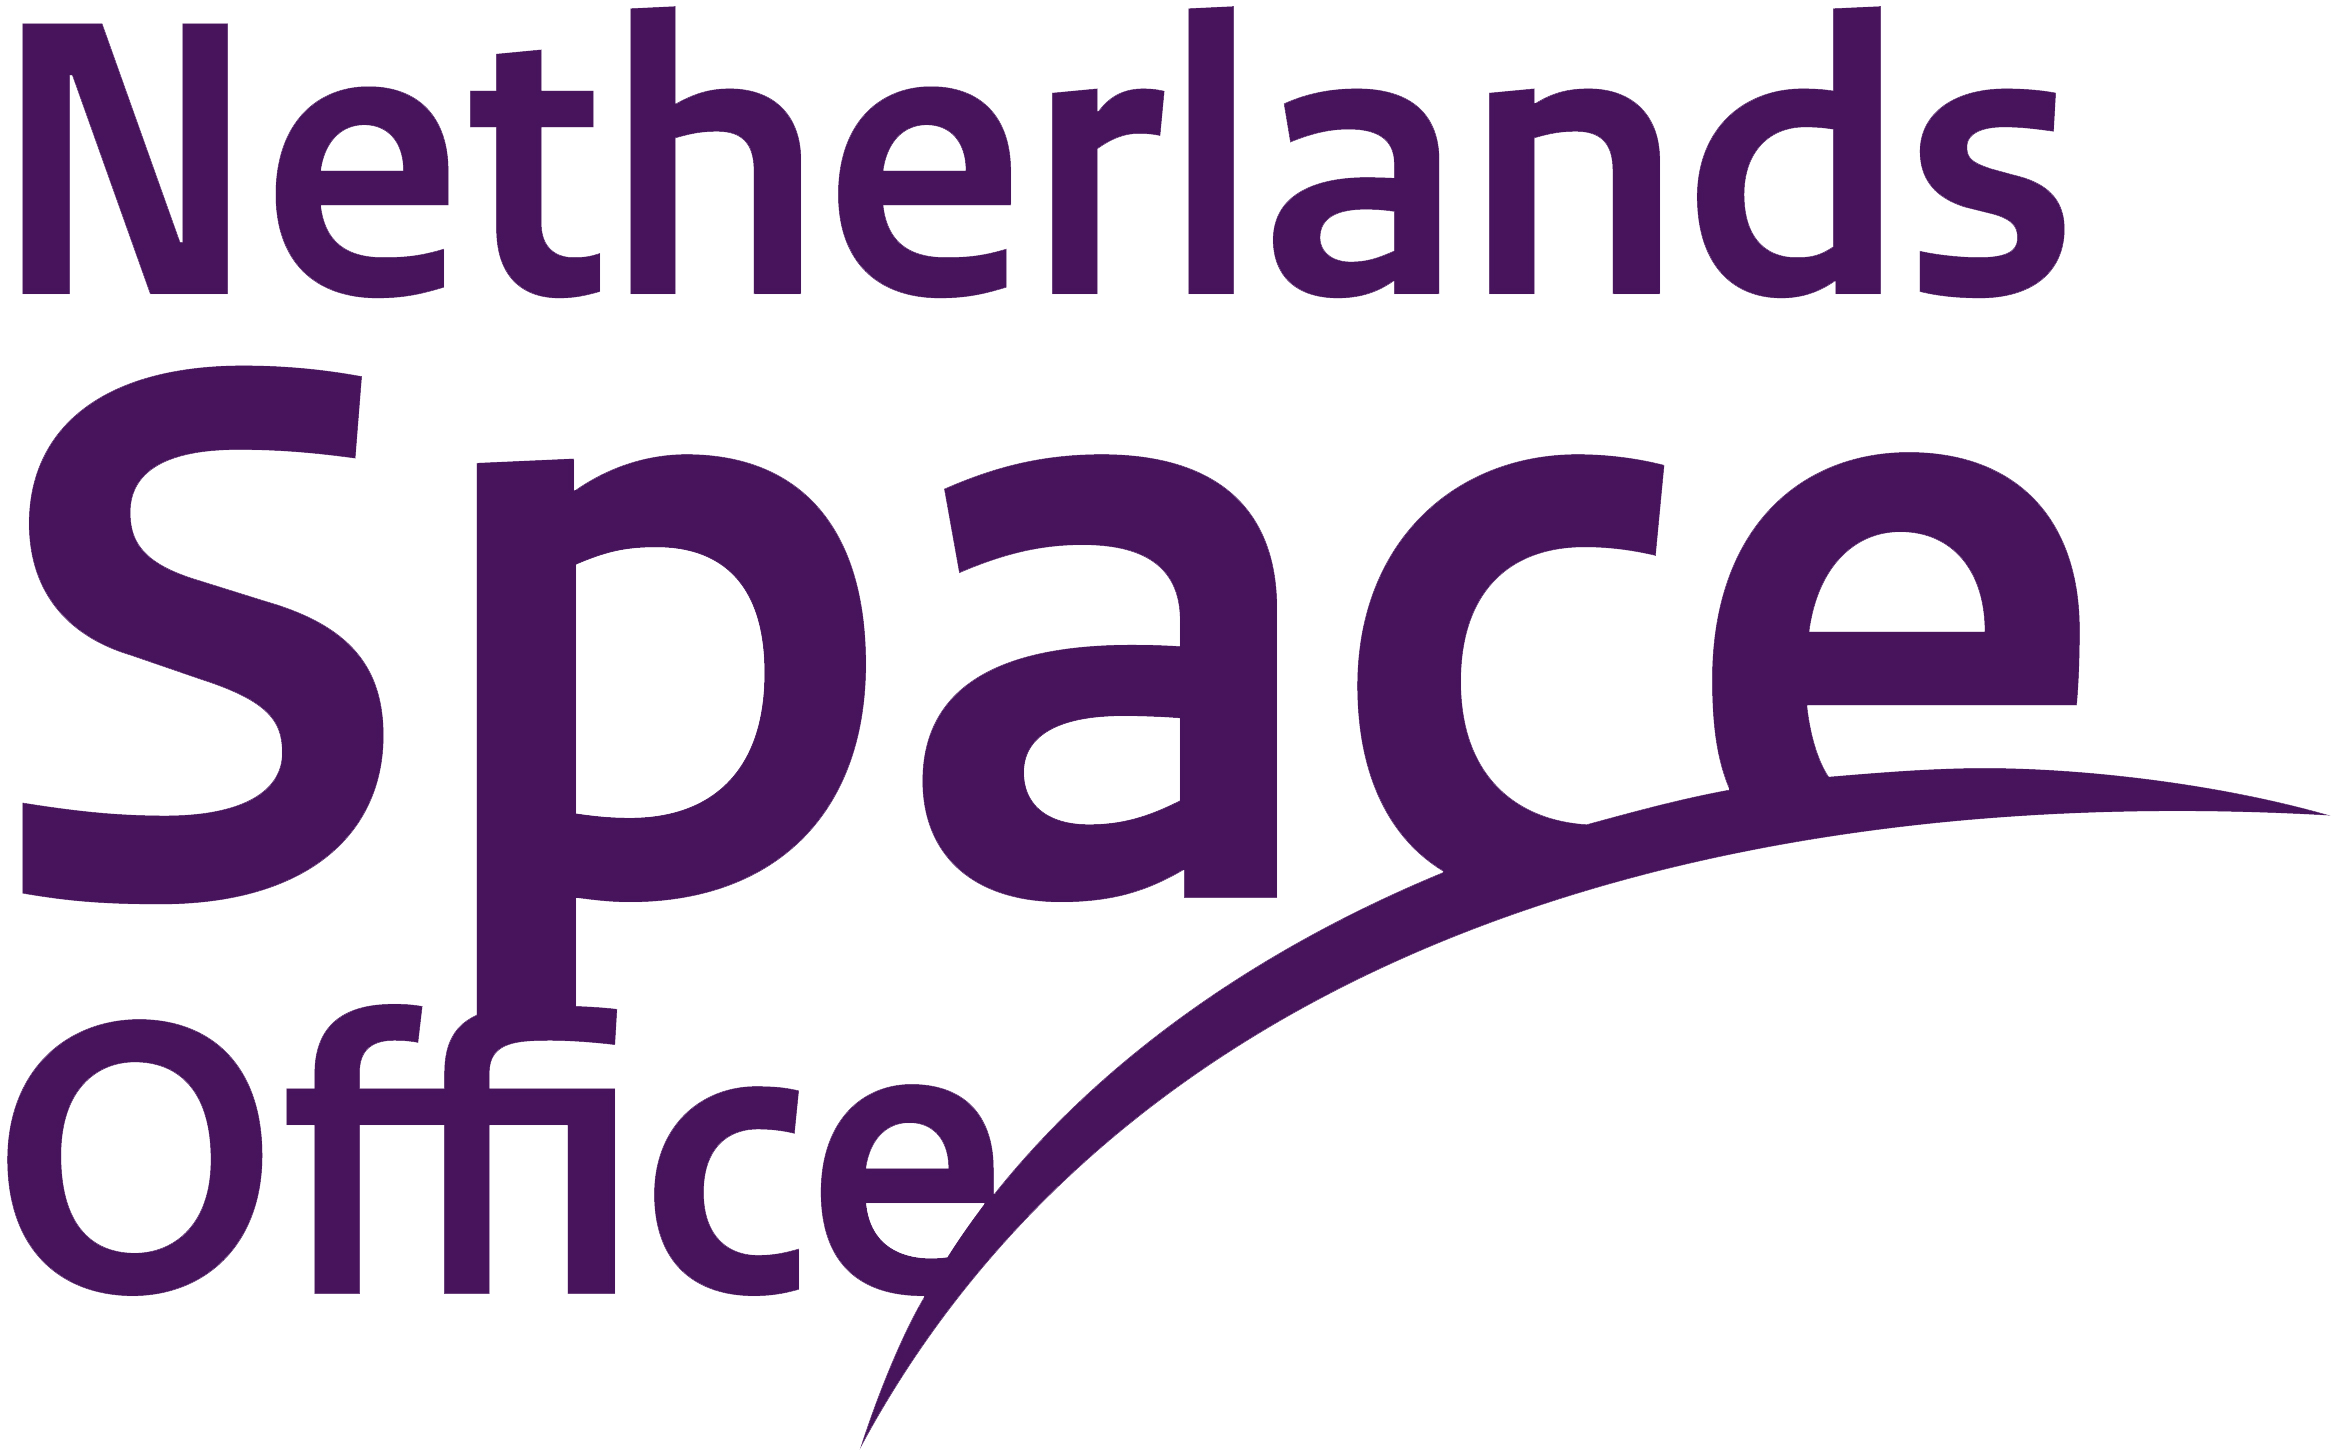 Logo of Netherlands Space Office